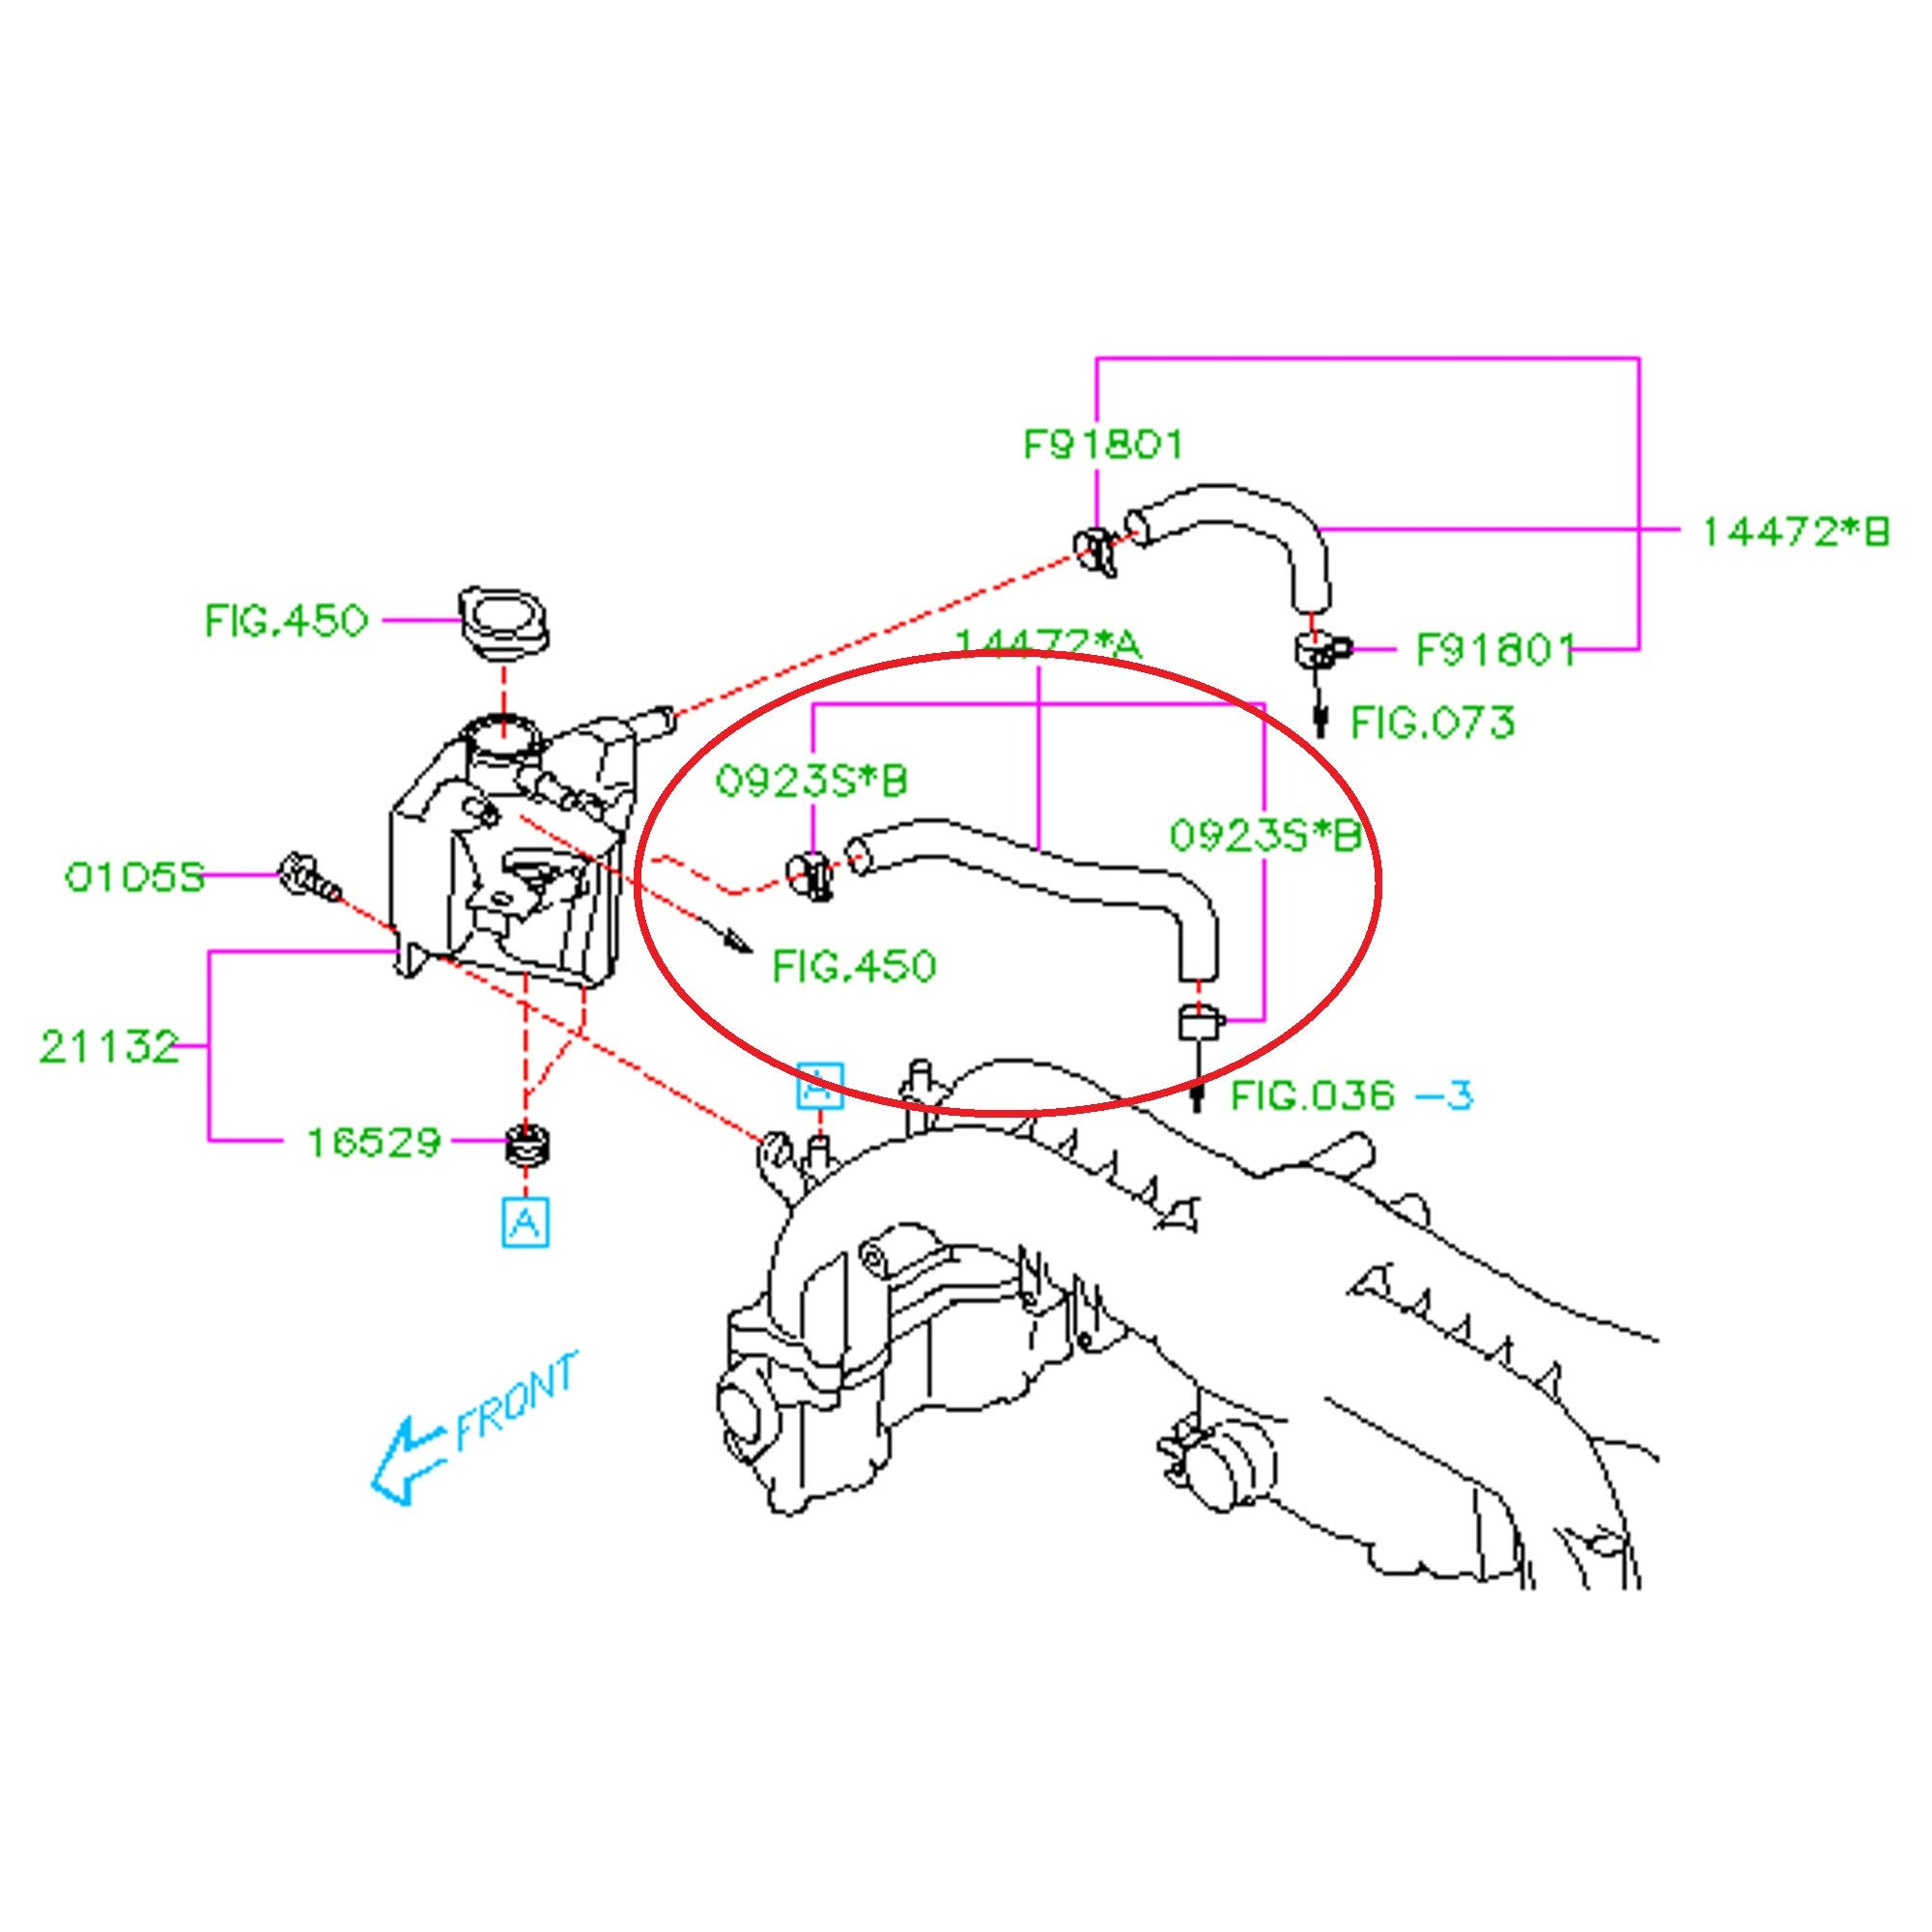 Subaru Outback 2008 Wiring Diagram Quick Start Guide Of Layout 2004 Engine Land Rover Discovery Odicis 2007